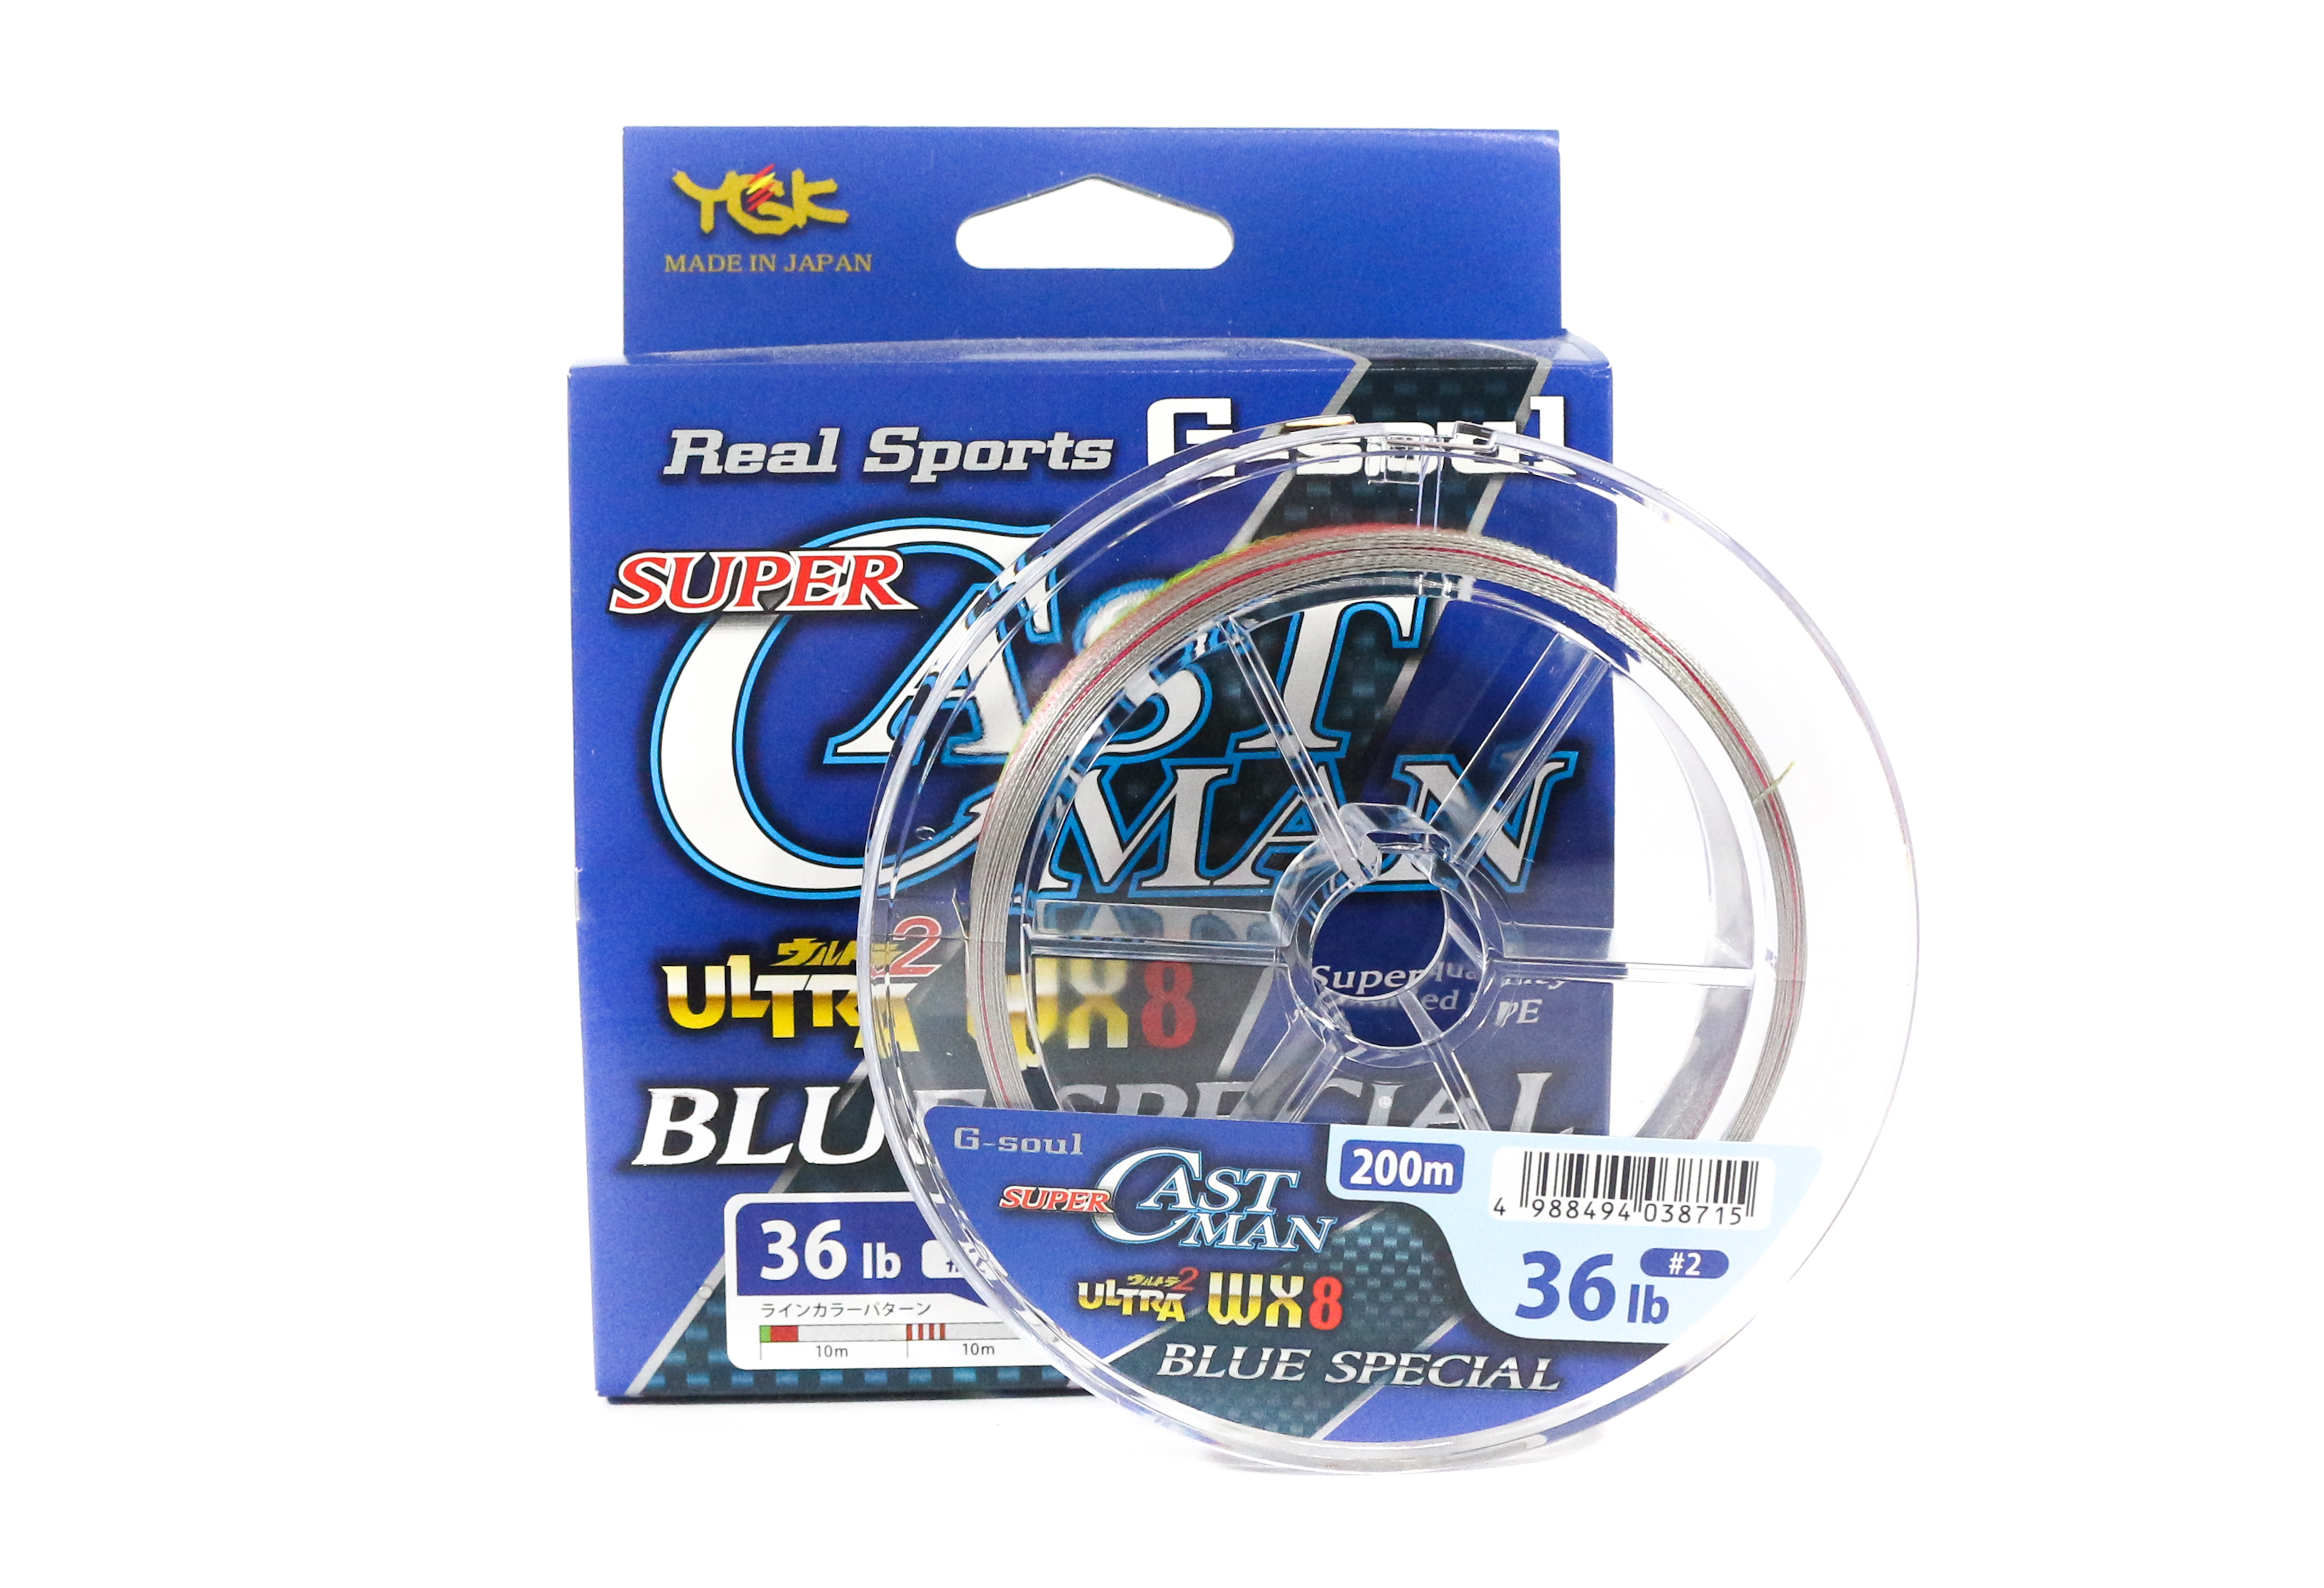 YGK GALIS CASTING BRAID LINE WX8 ULTRA CASTMAN BLUE SPECIAL 300m